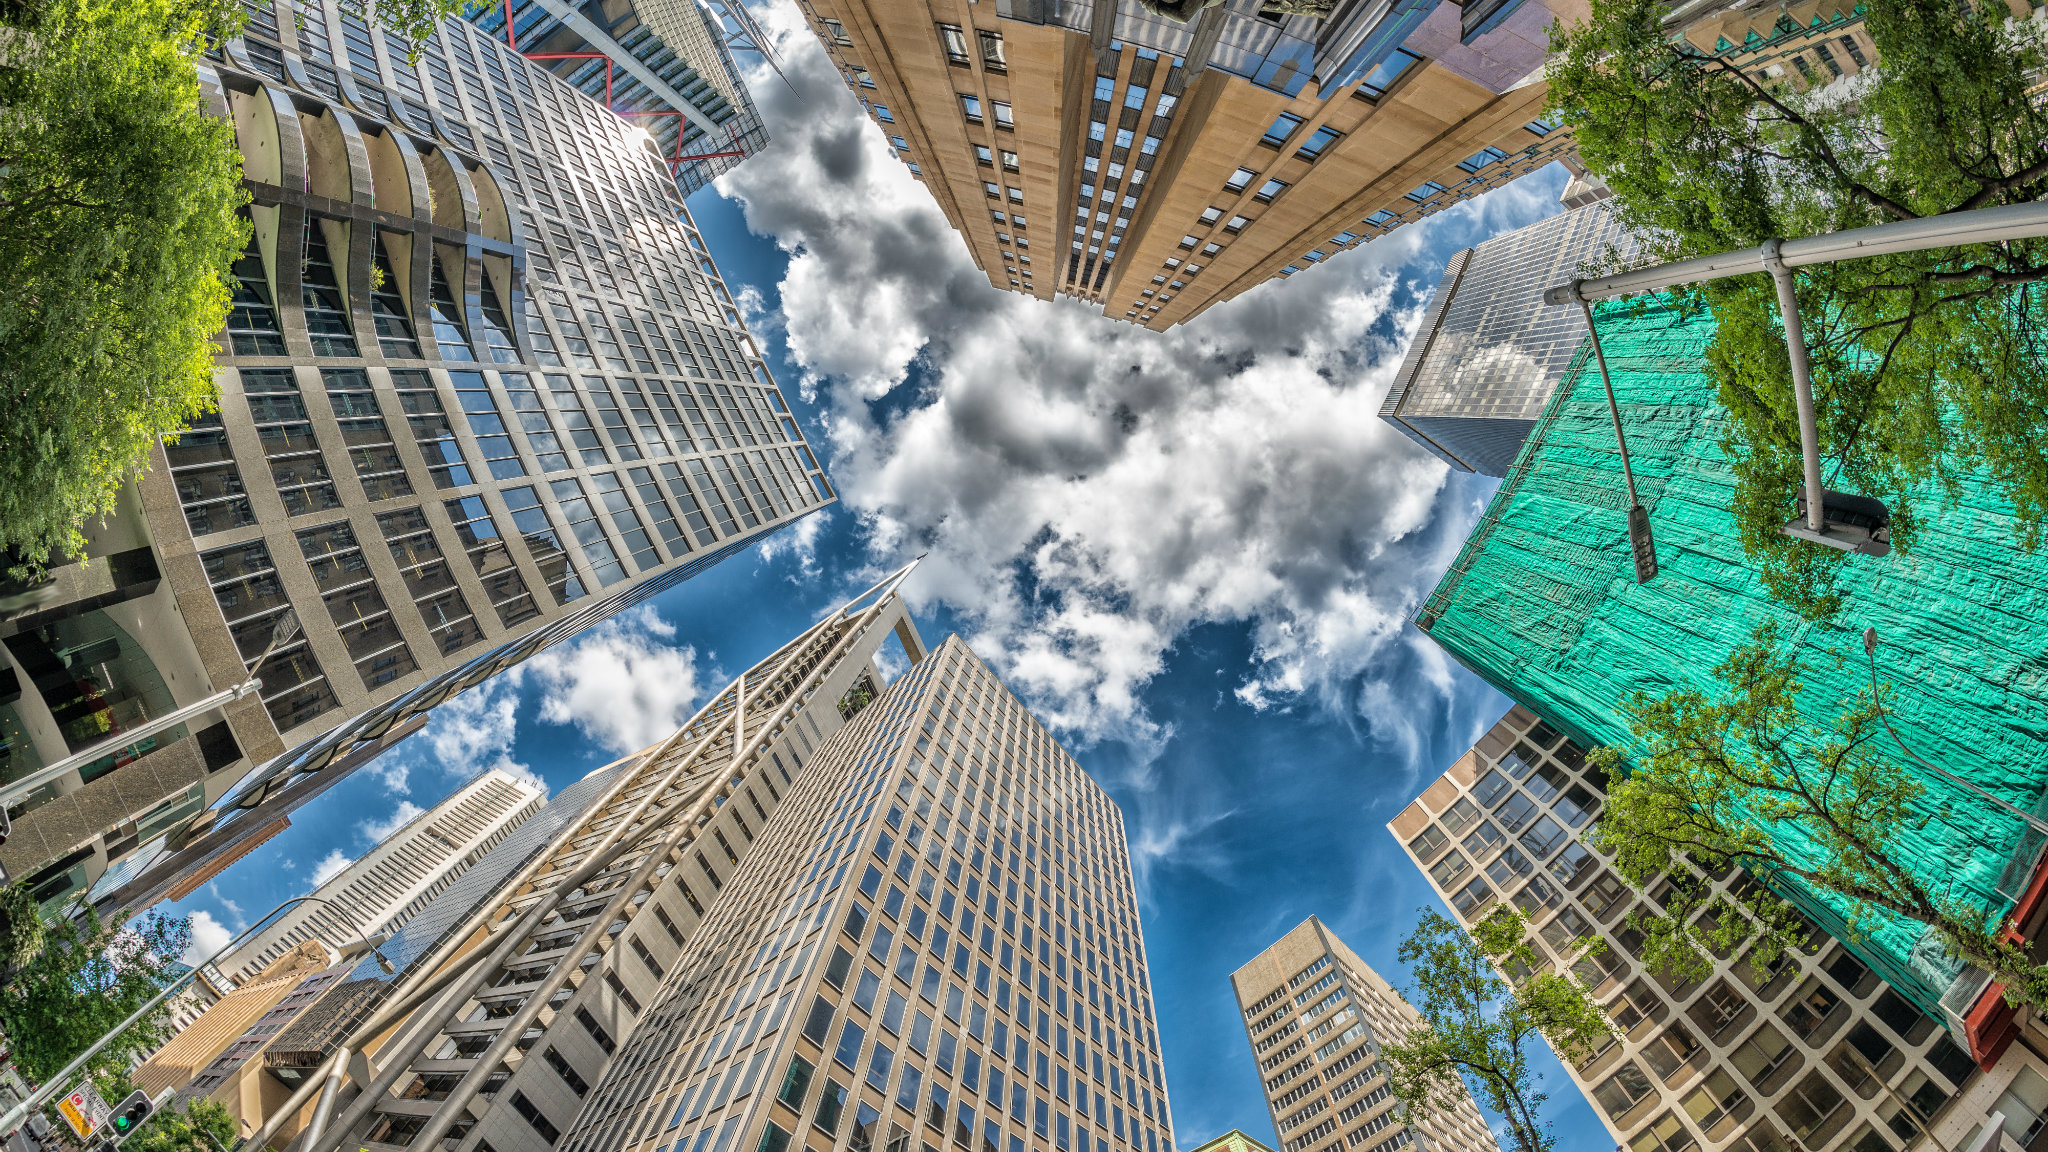 A worm's eye view of some skyscrapers reaching into a blue sky